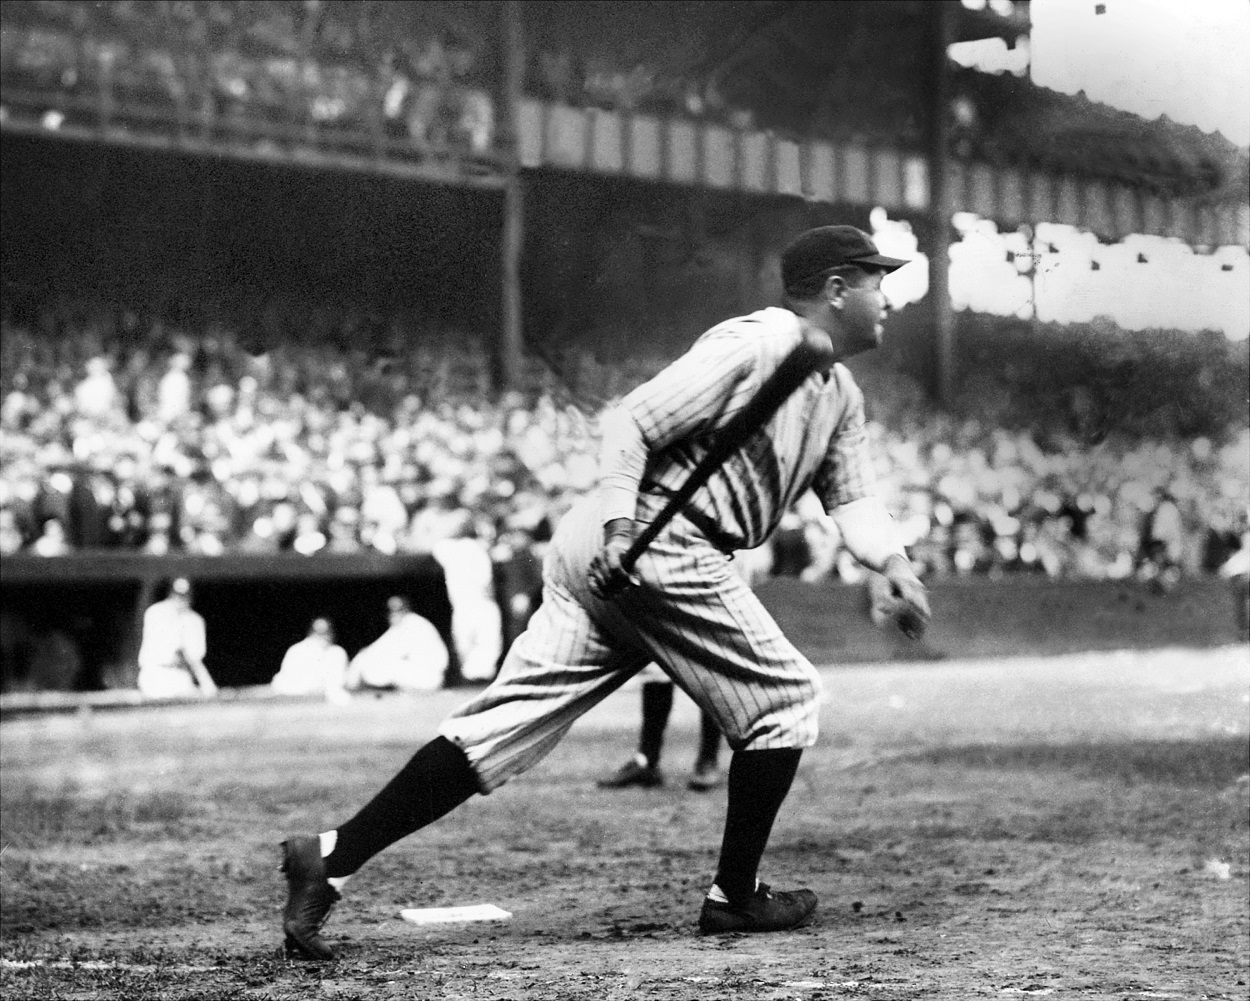 Babe Ruth Actually Hit 715 Home Runs During His MLB Career and Was Given Credit for That Number for About a Week